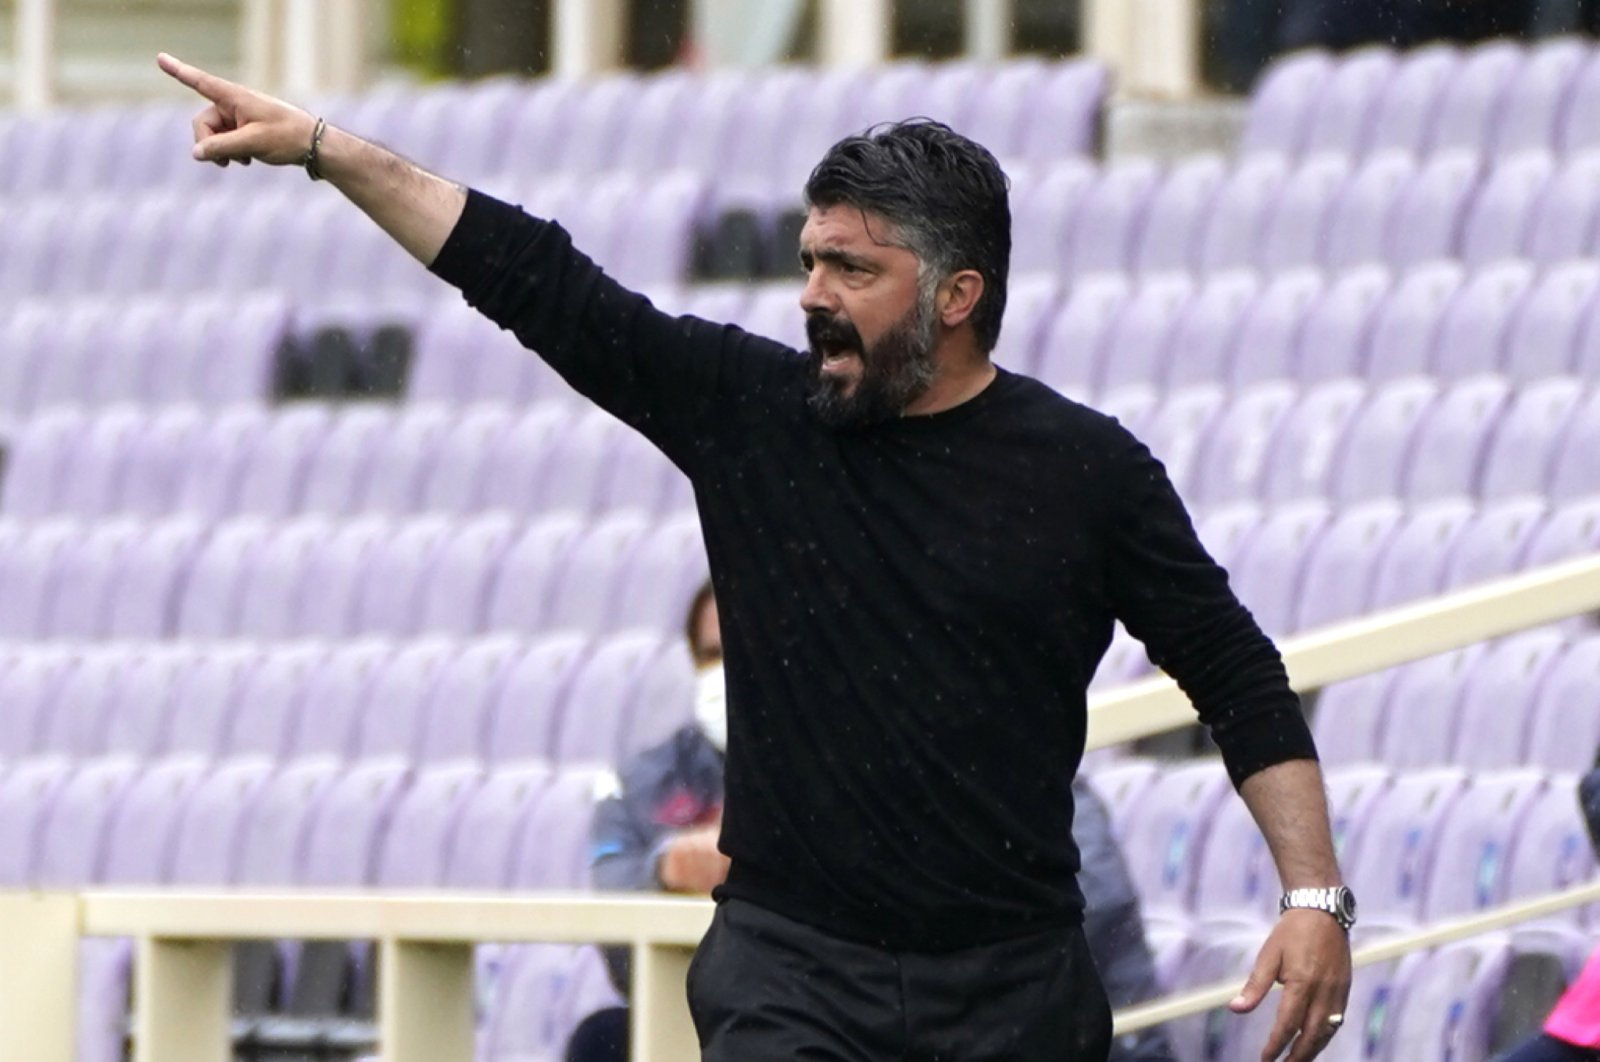 Napoli coach Gennaro Gattuso gestures during the Italian Serie A soccer match between Fiorentina and Napoli at the Artemio Franchi stadium in Florence, Italy, May 16, 2021. (LaPresse via AP)